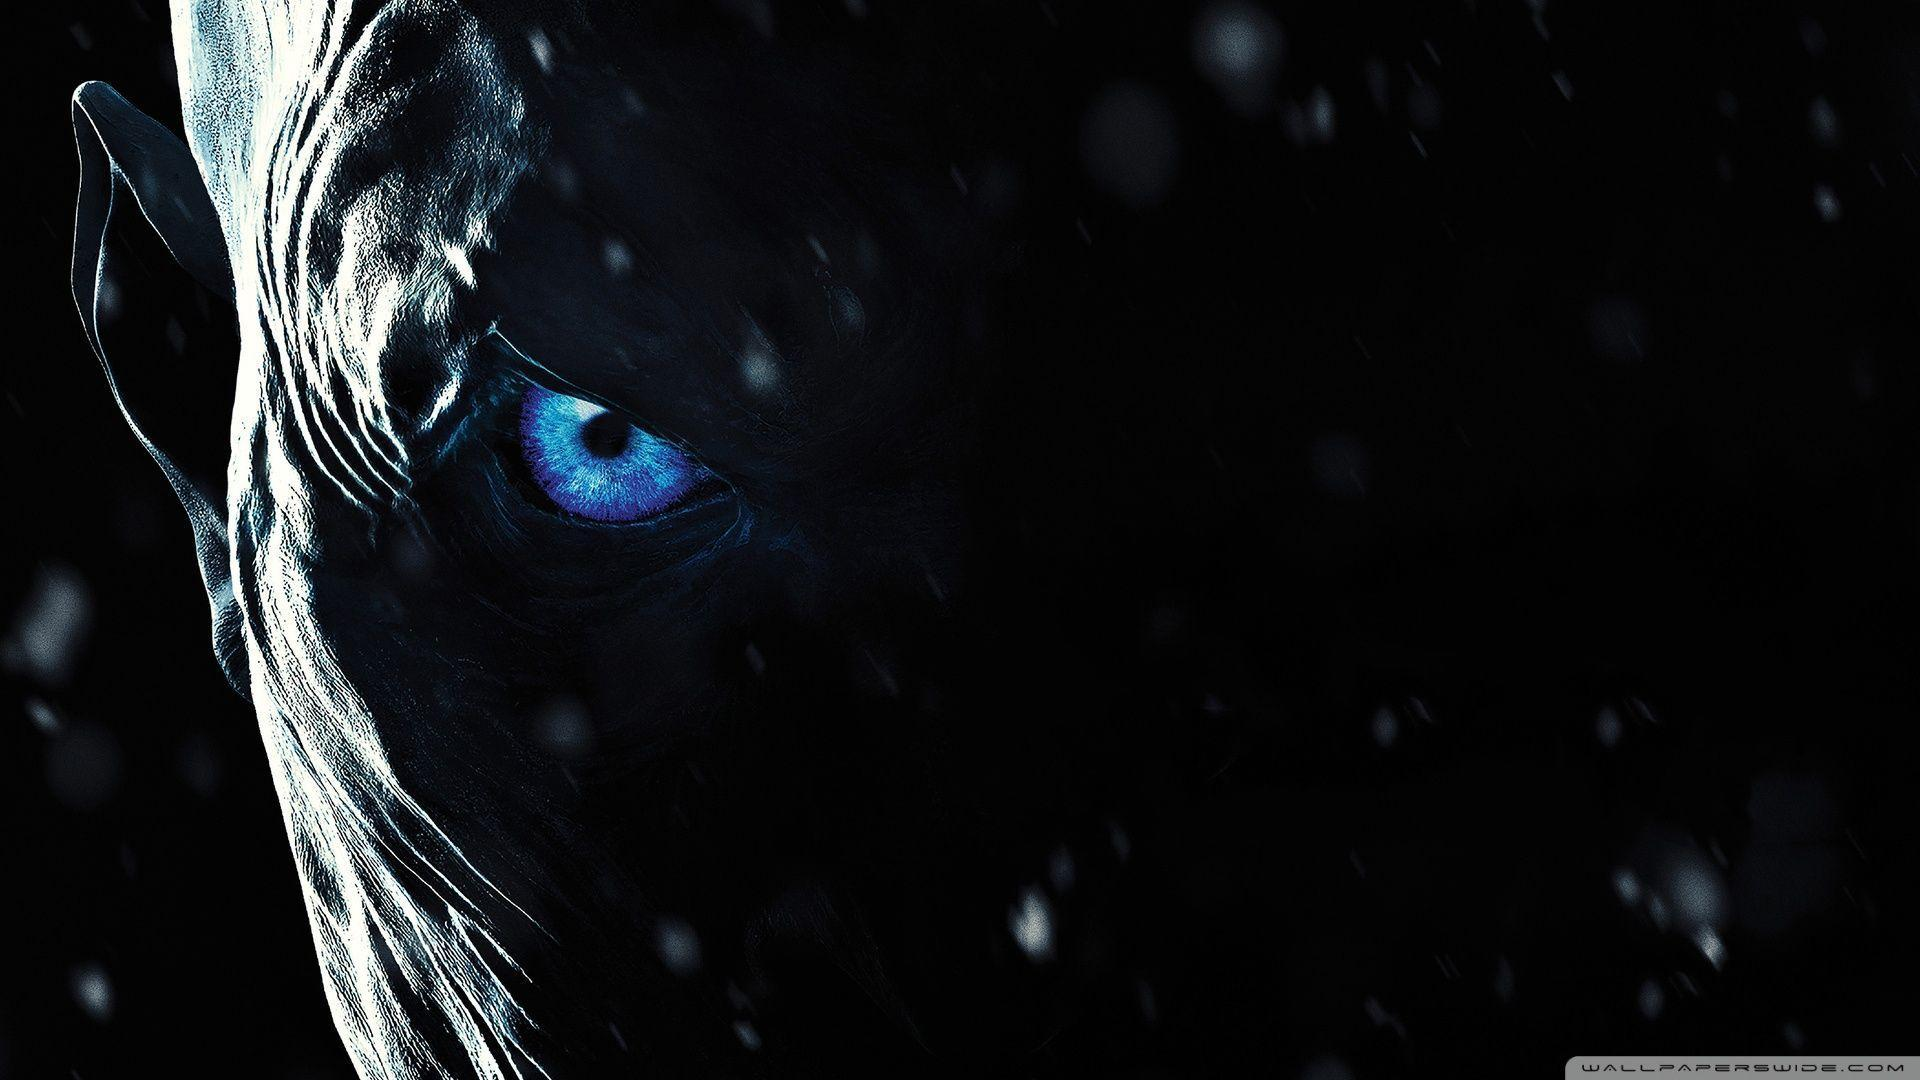 Game Of Thrones Season 7 Wallpapers